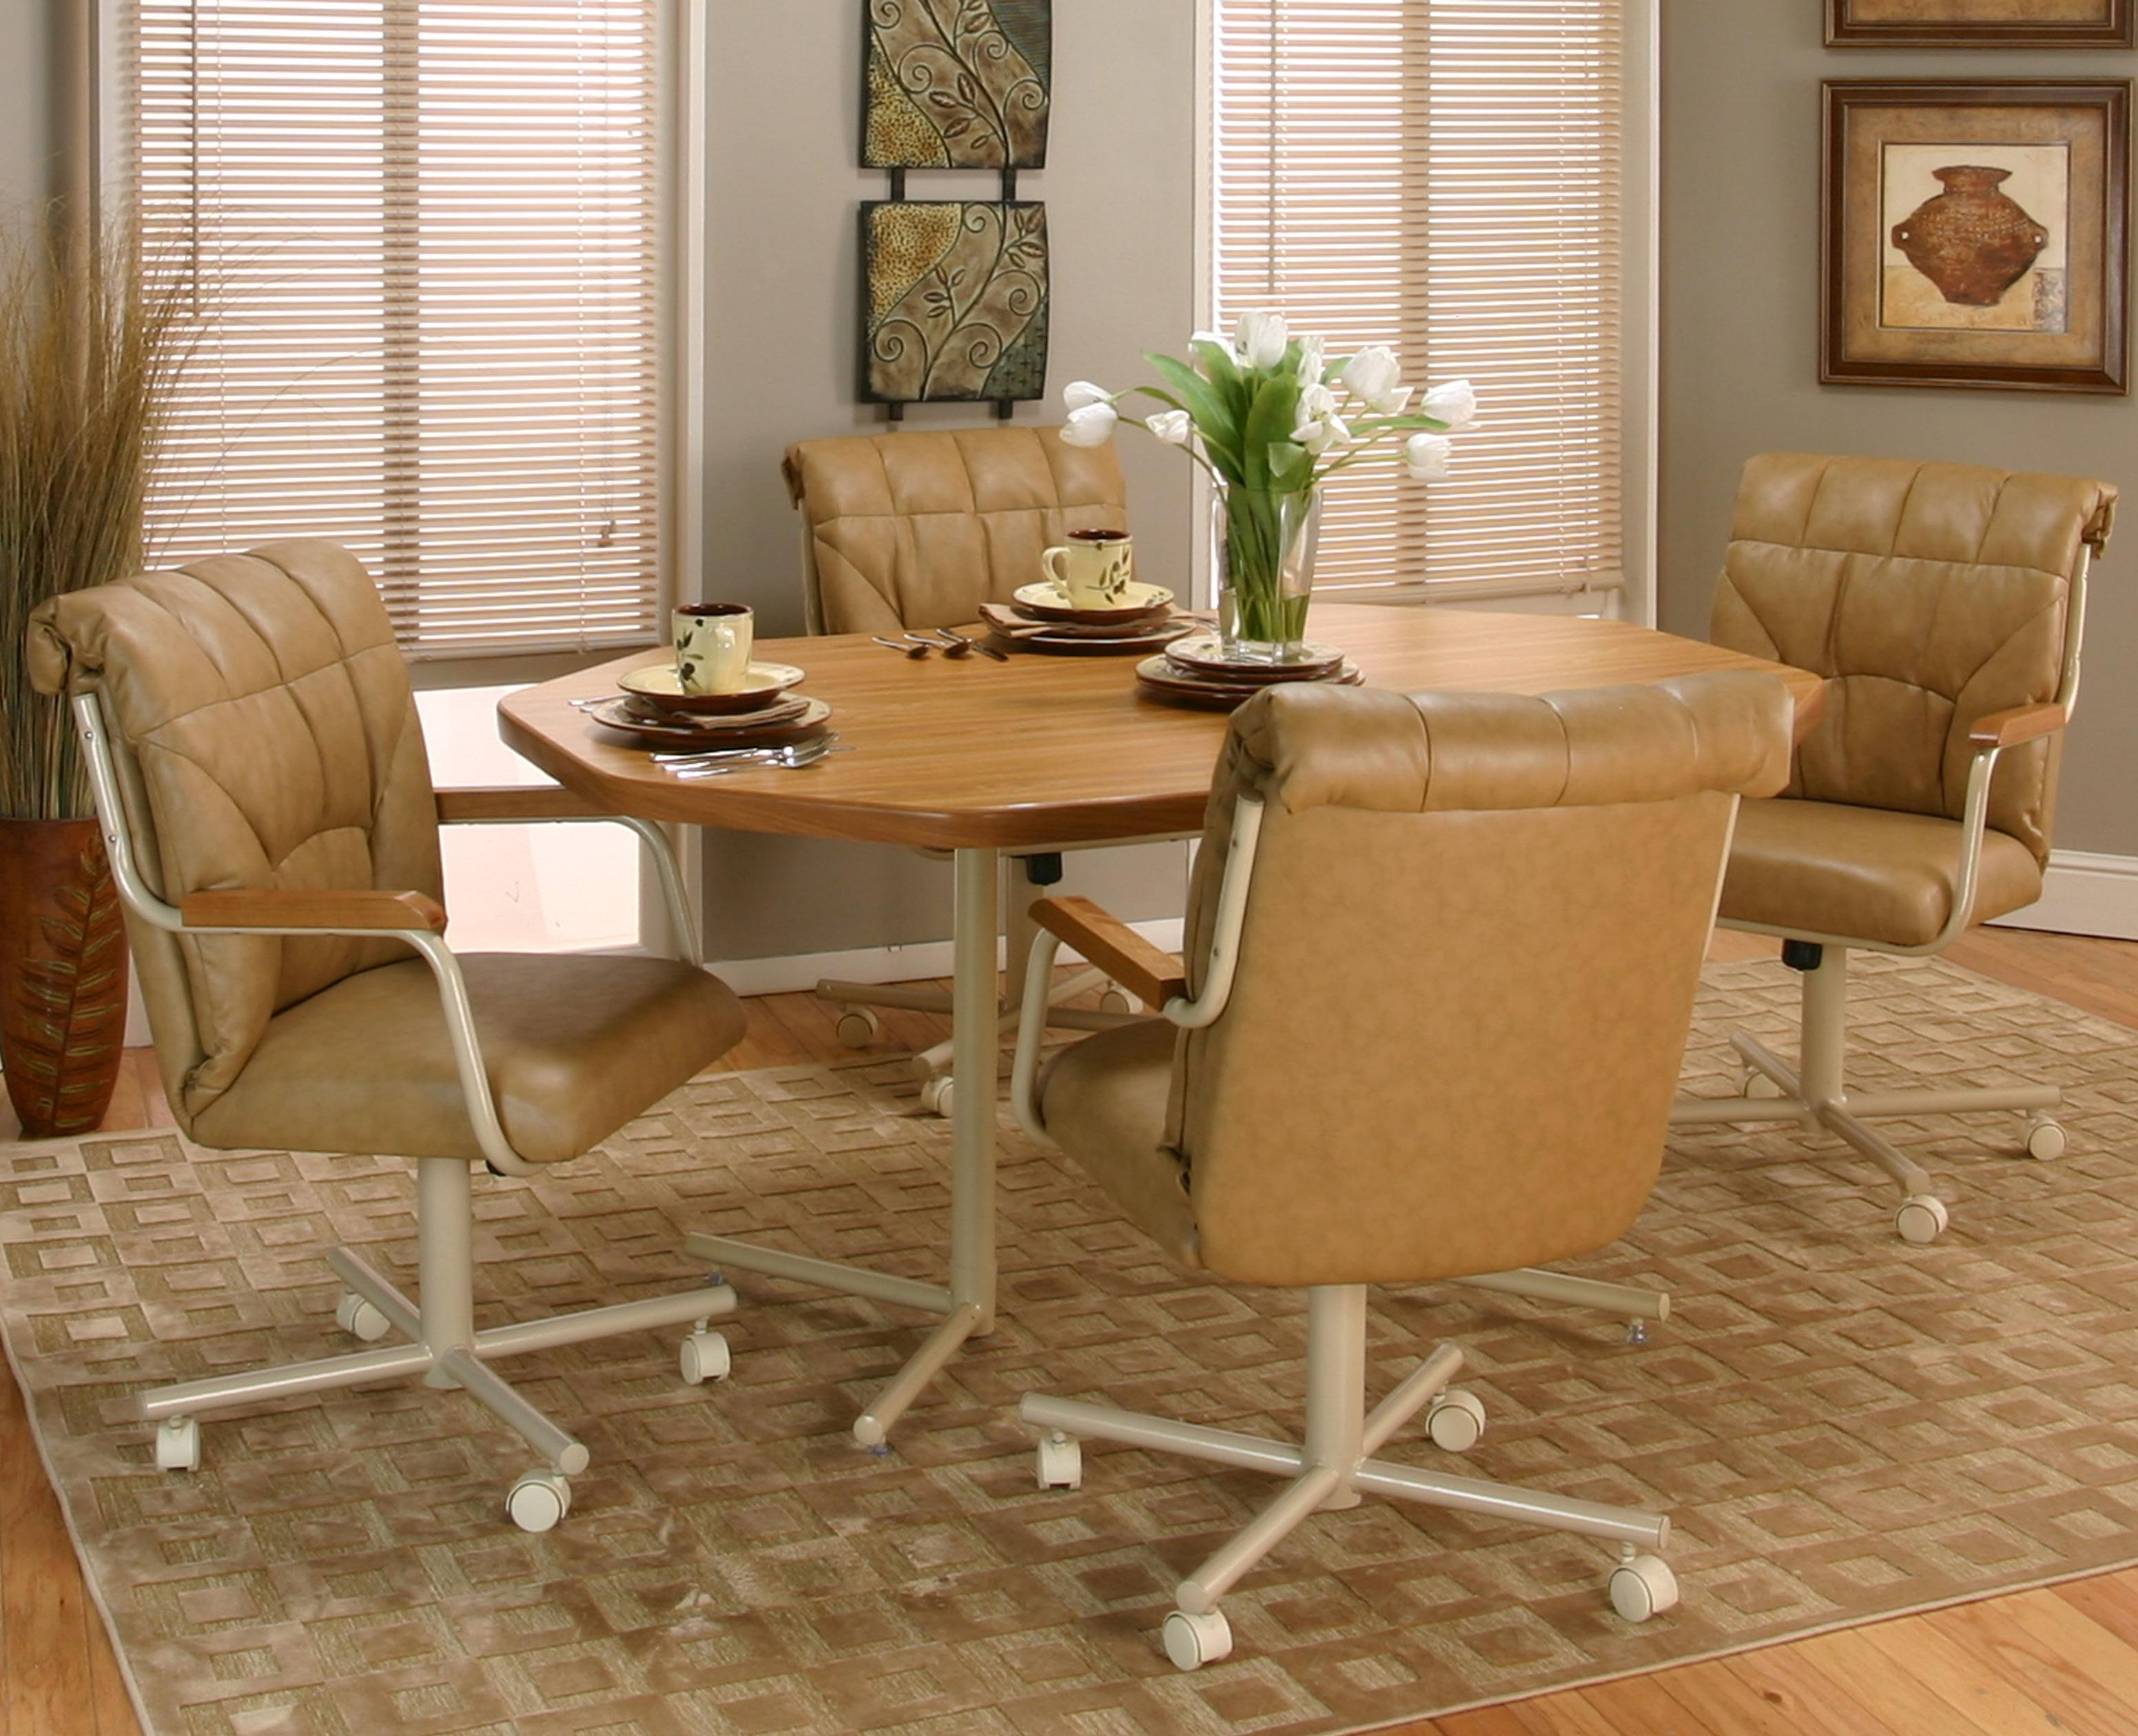 kitchen chairs with rollers Tilt Swivel Chair